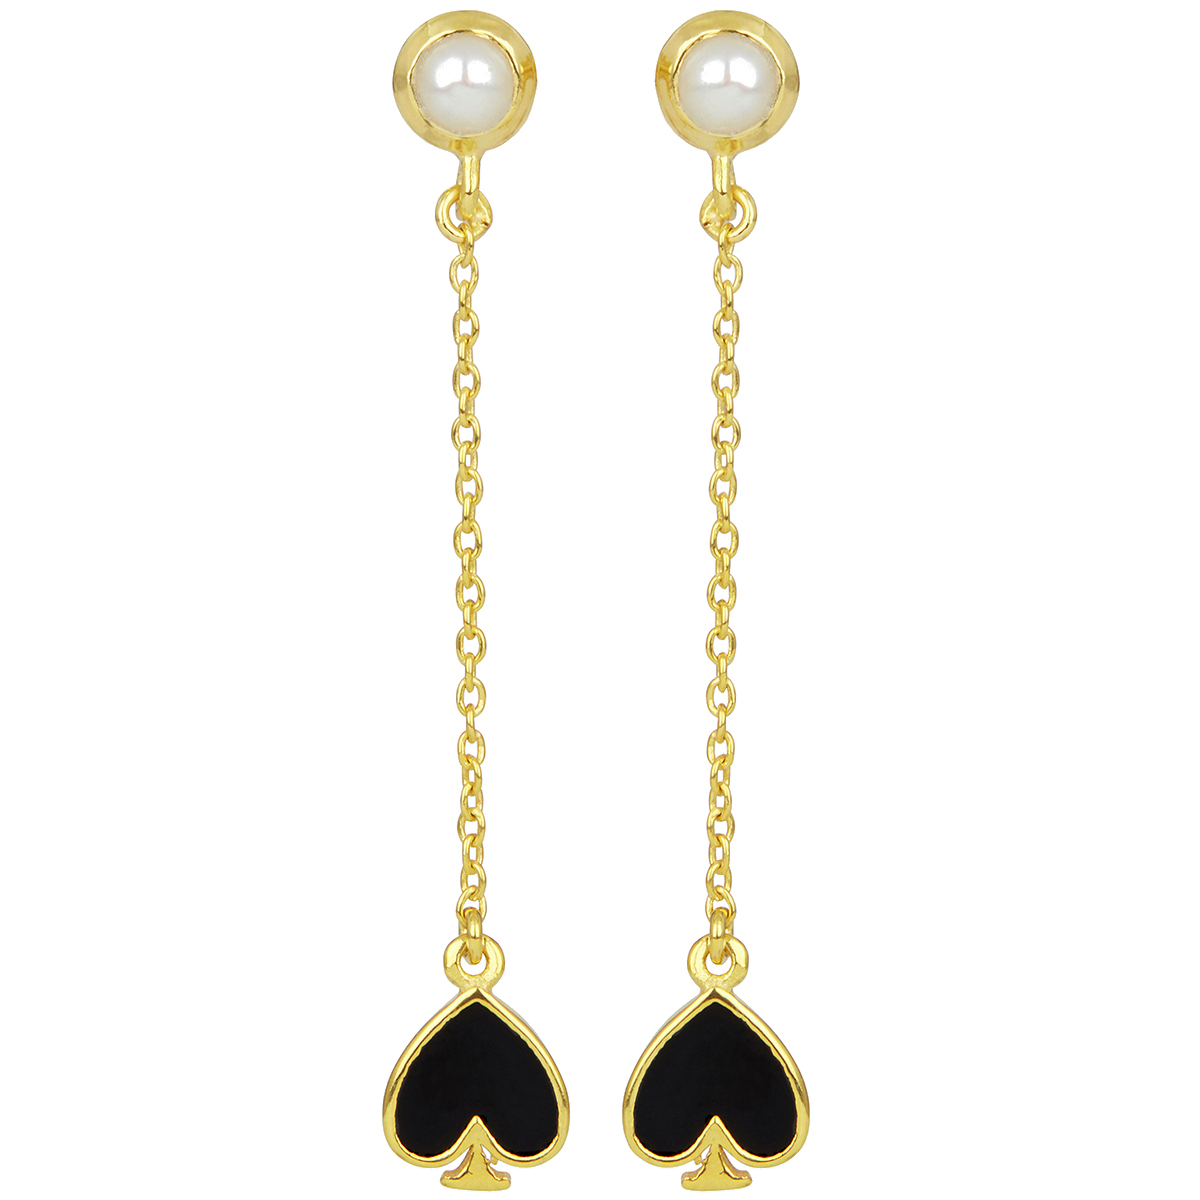 Black spade and pearl long stud earrings by Ottoman Hands